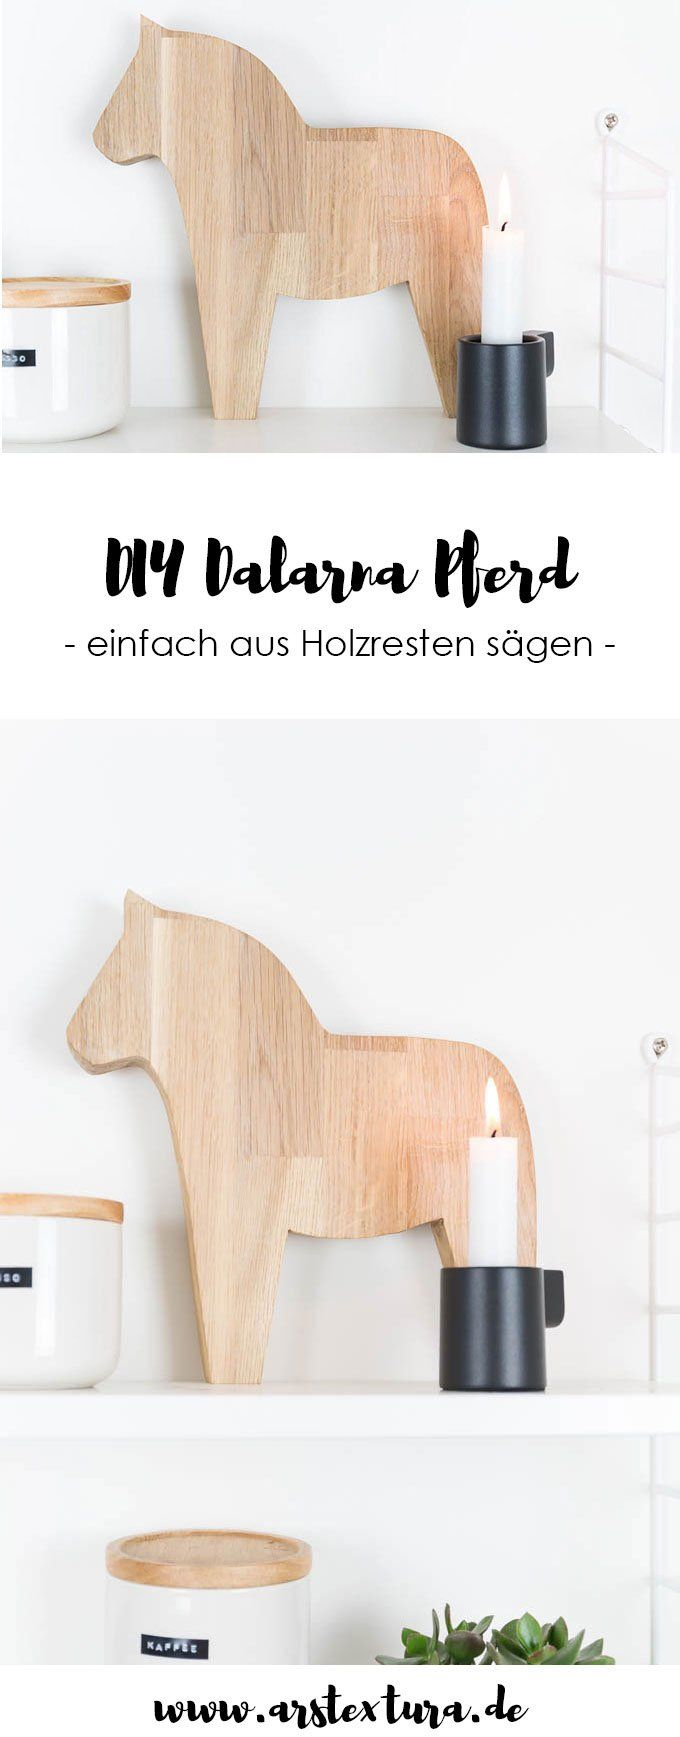 dalapferd aus holz s gen diy geschenk weihnachten deko geschenkideen basteln holz und. Black Bedroom Furniture Sets. Home Design Ideas